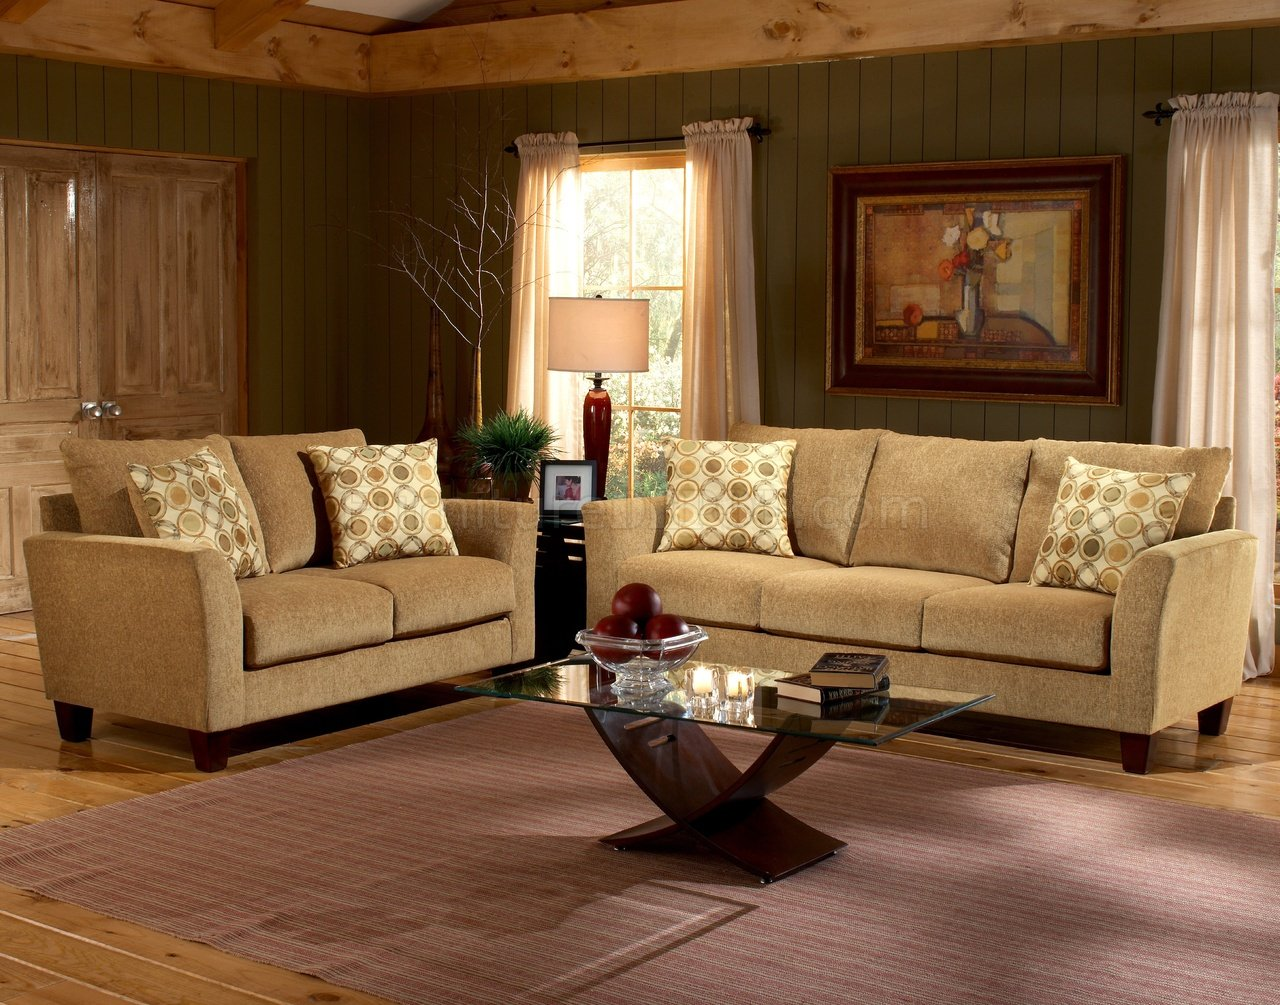 Barton camel fabric casual living room sofa loveseat set for Casual living room chairs